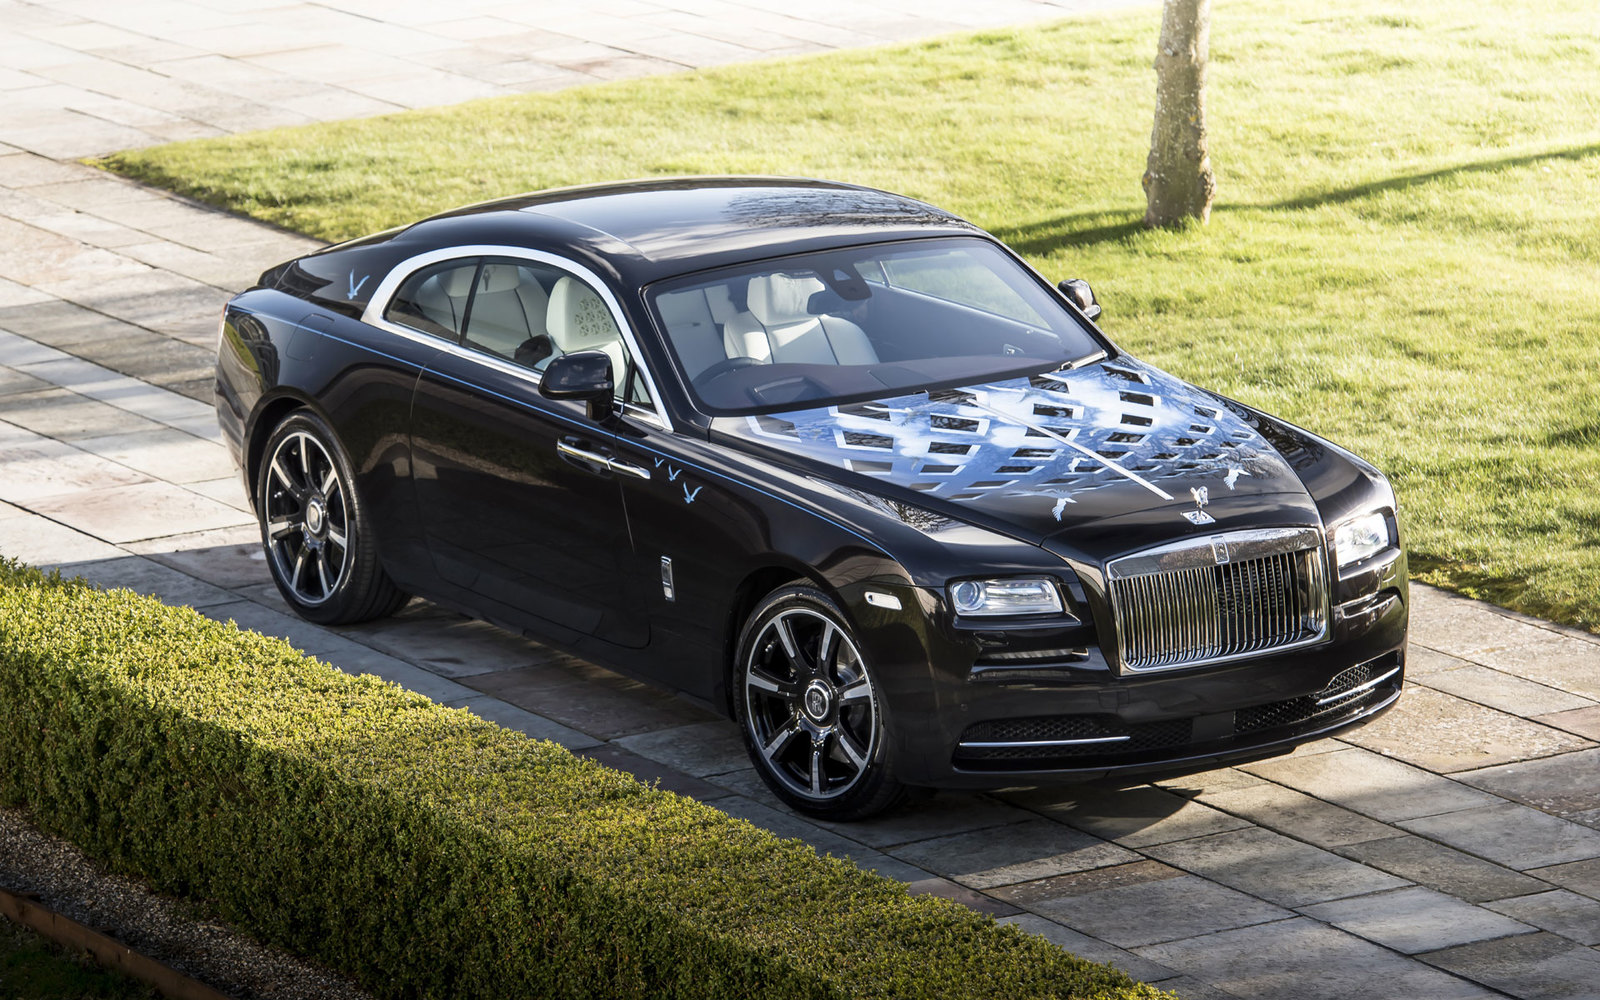 Rolls Royce Wraith Inspired by Music